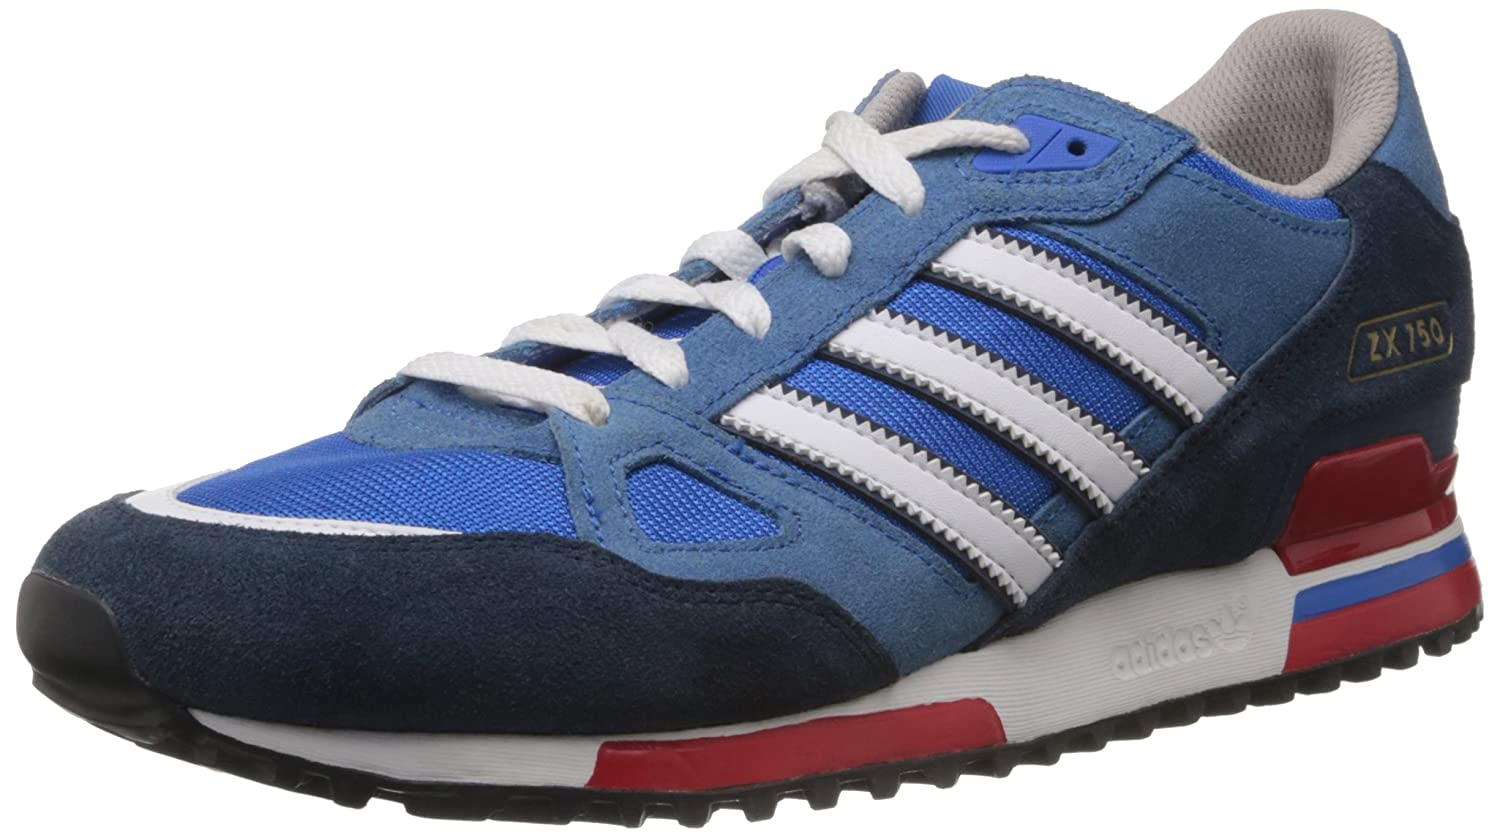 Adidas Originals Men's ZX 750 Shoes Sports Casual Trainers: Amazon.co.uk:  Shoes & Bags